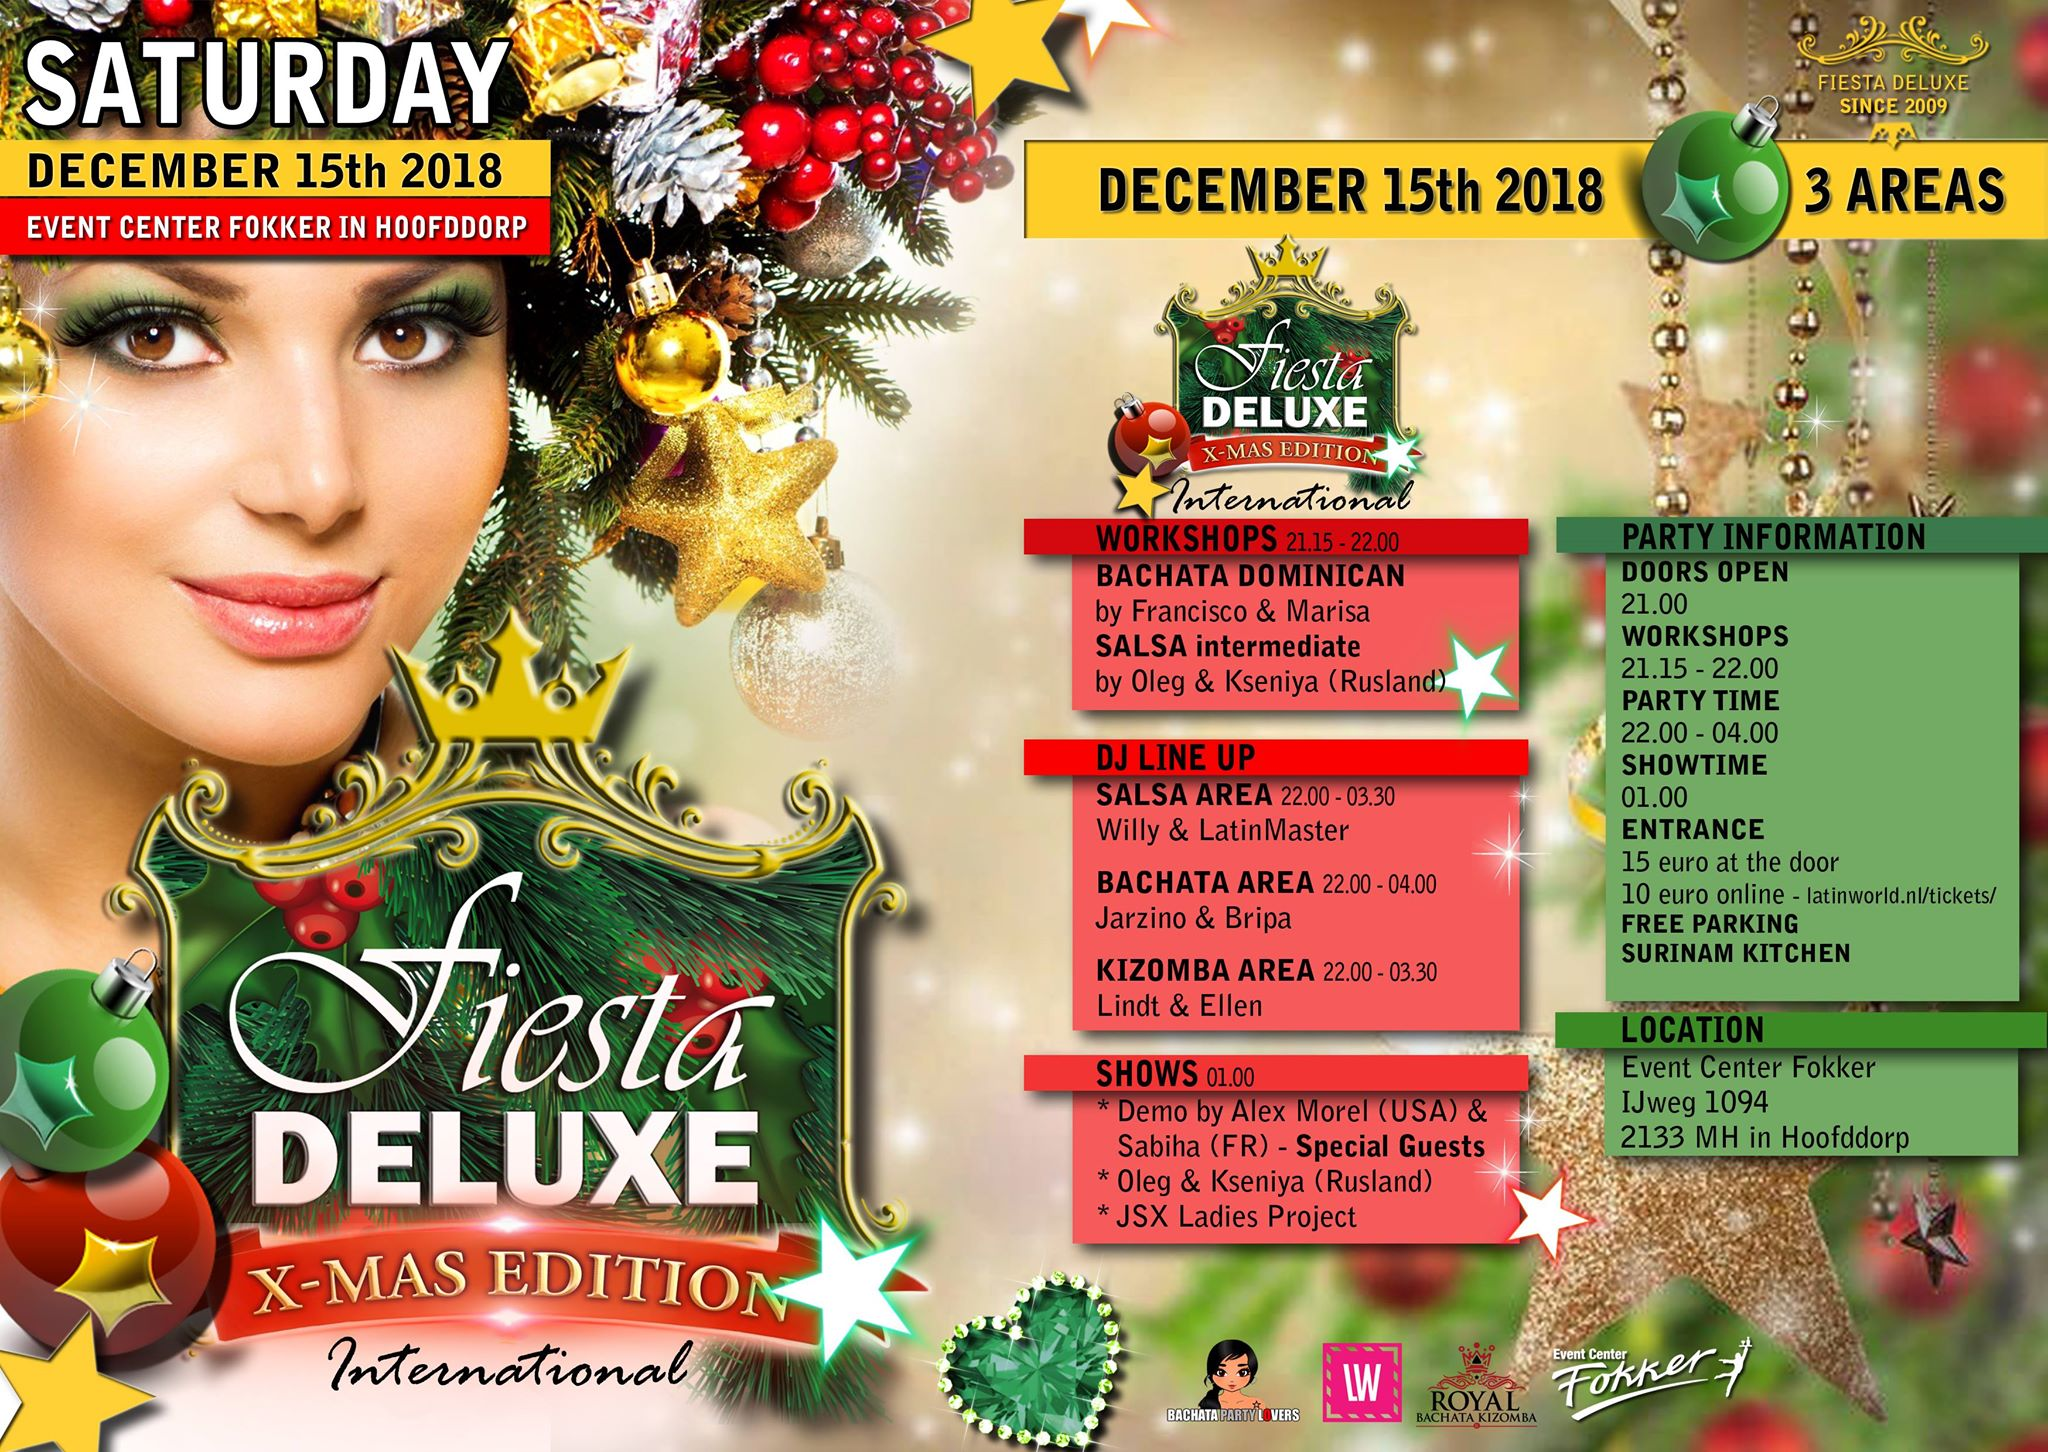 Fiesta Deluxe – XMas Edition International (3 AREAS)